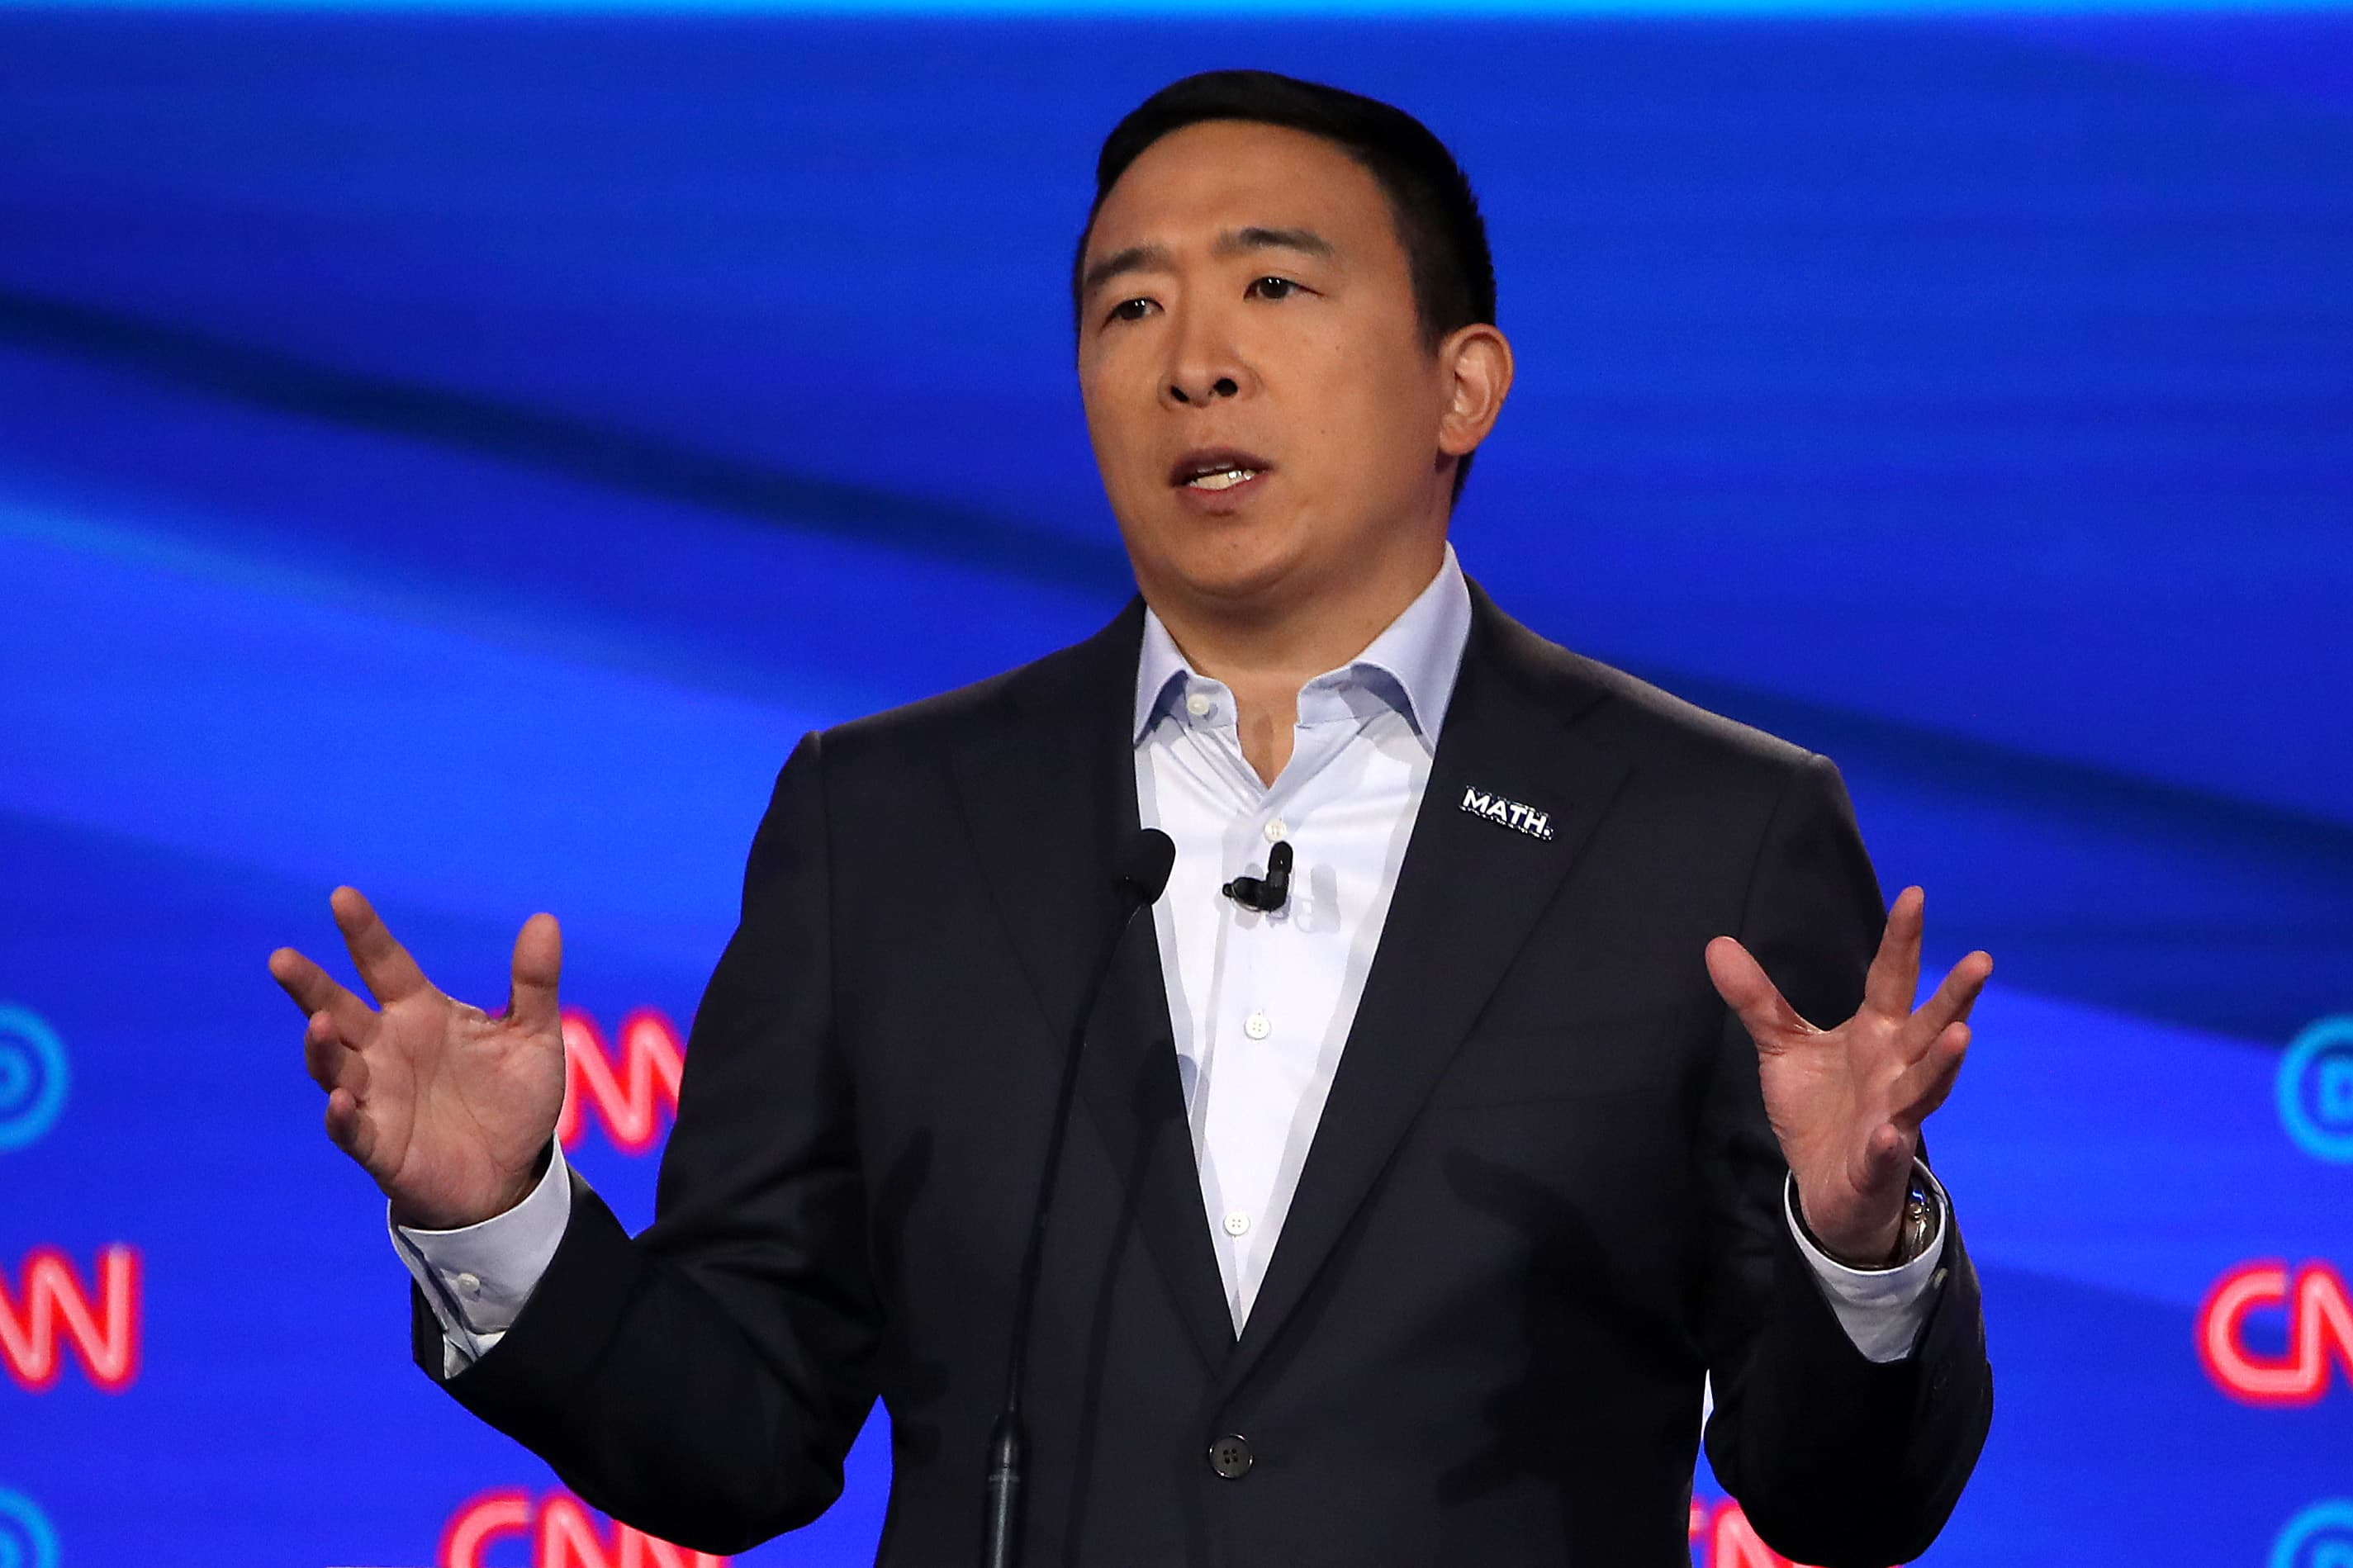 Andrew Yang: You should get a check in the mail from Facebook, Amazon, Google for your data